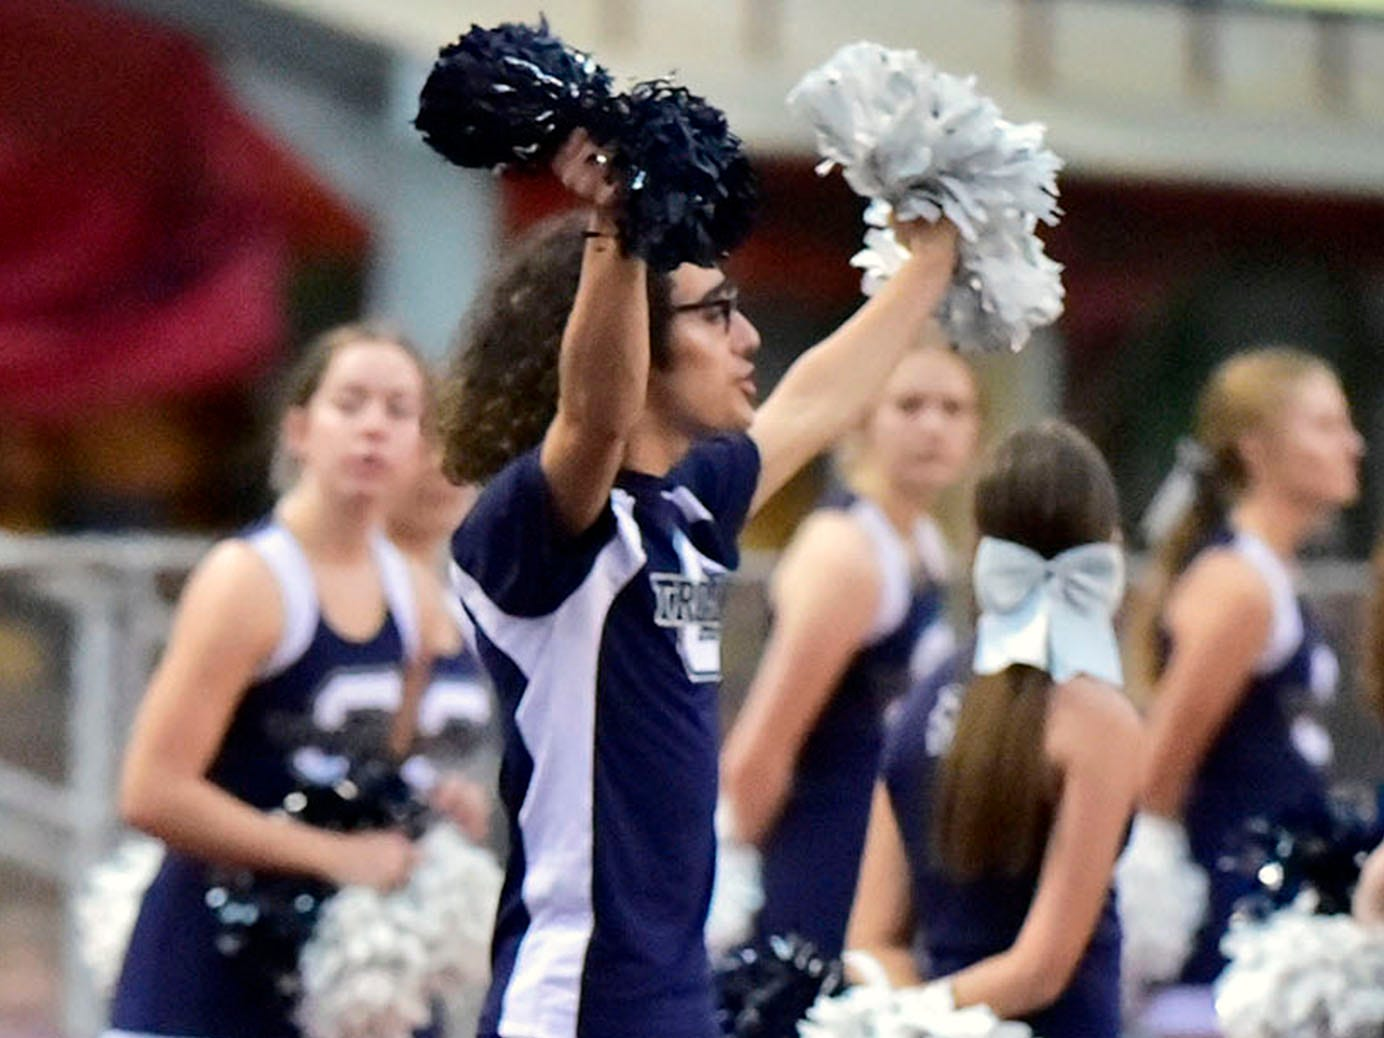 Trojan cheeleaders root for their undefeated team. Chambersburg defeated Altoona in PIAA football to move to 4-0 on Friday, Sept. 14, 2018.